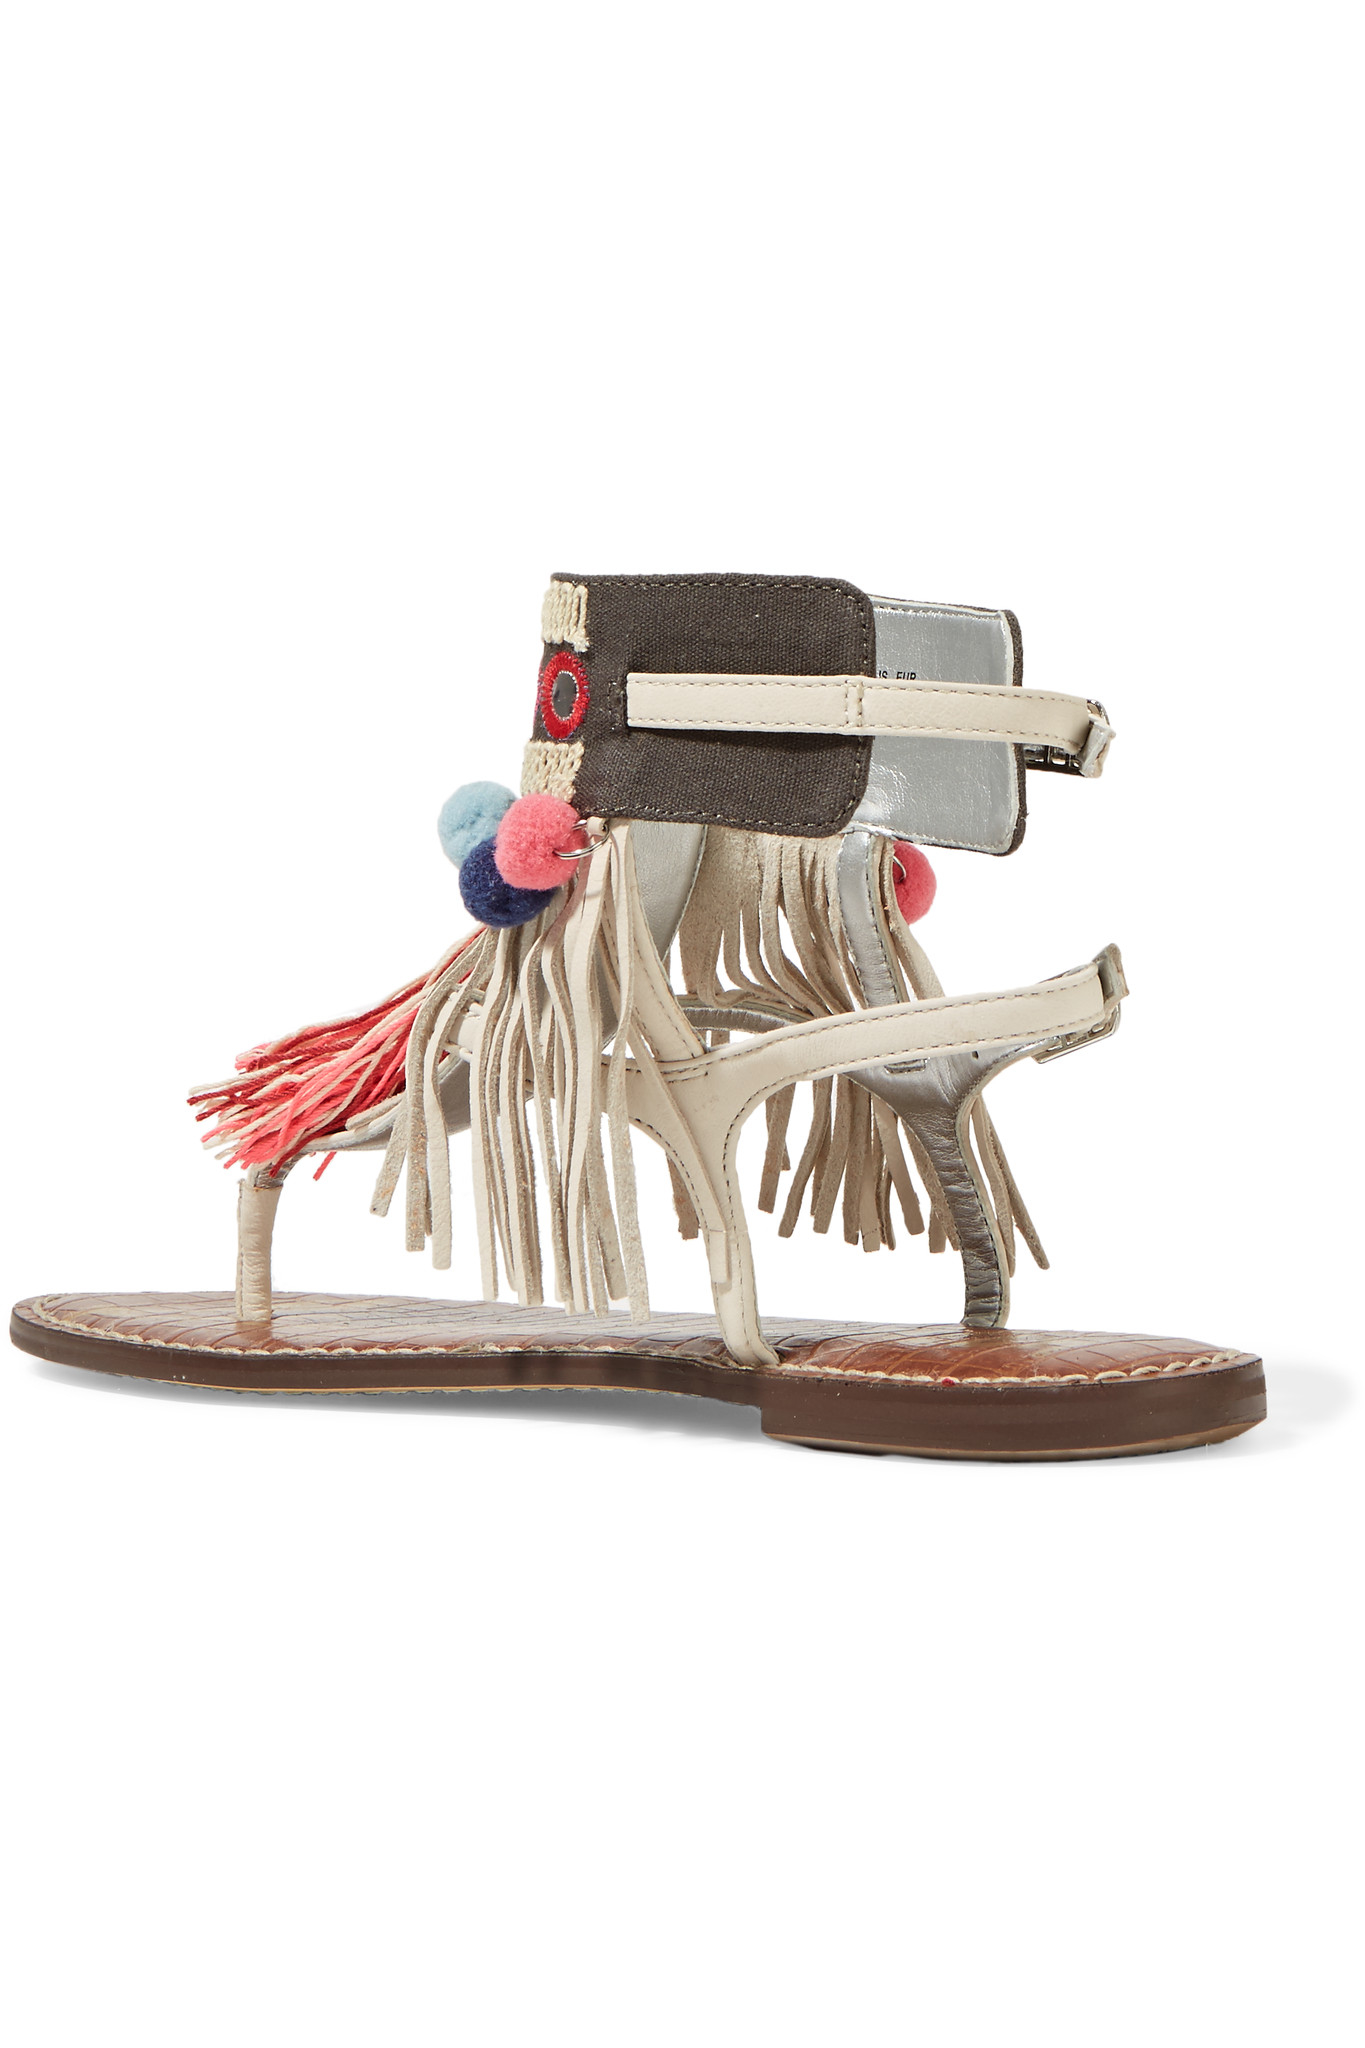 081c7480f24c48 Lyst - Sam Edelman Gere Fringe-trimmed Leather Sandals in White